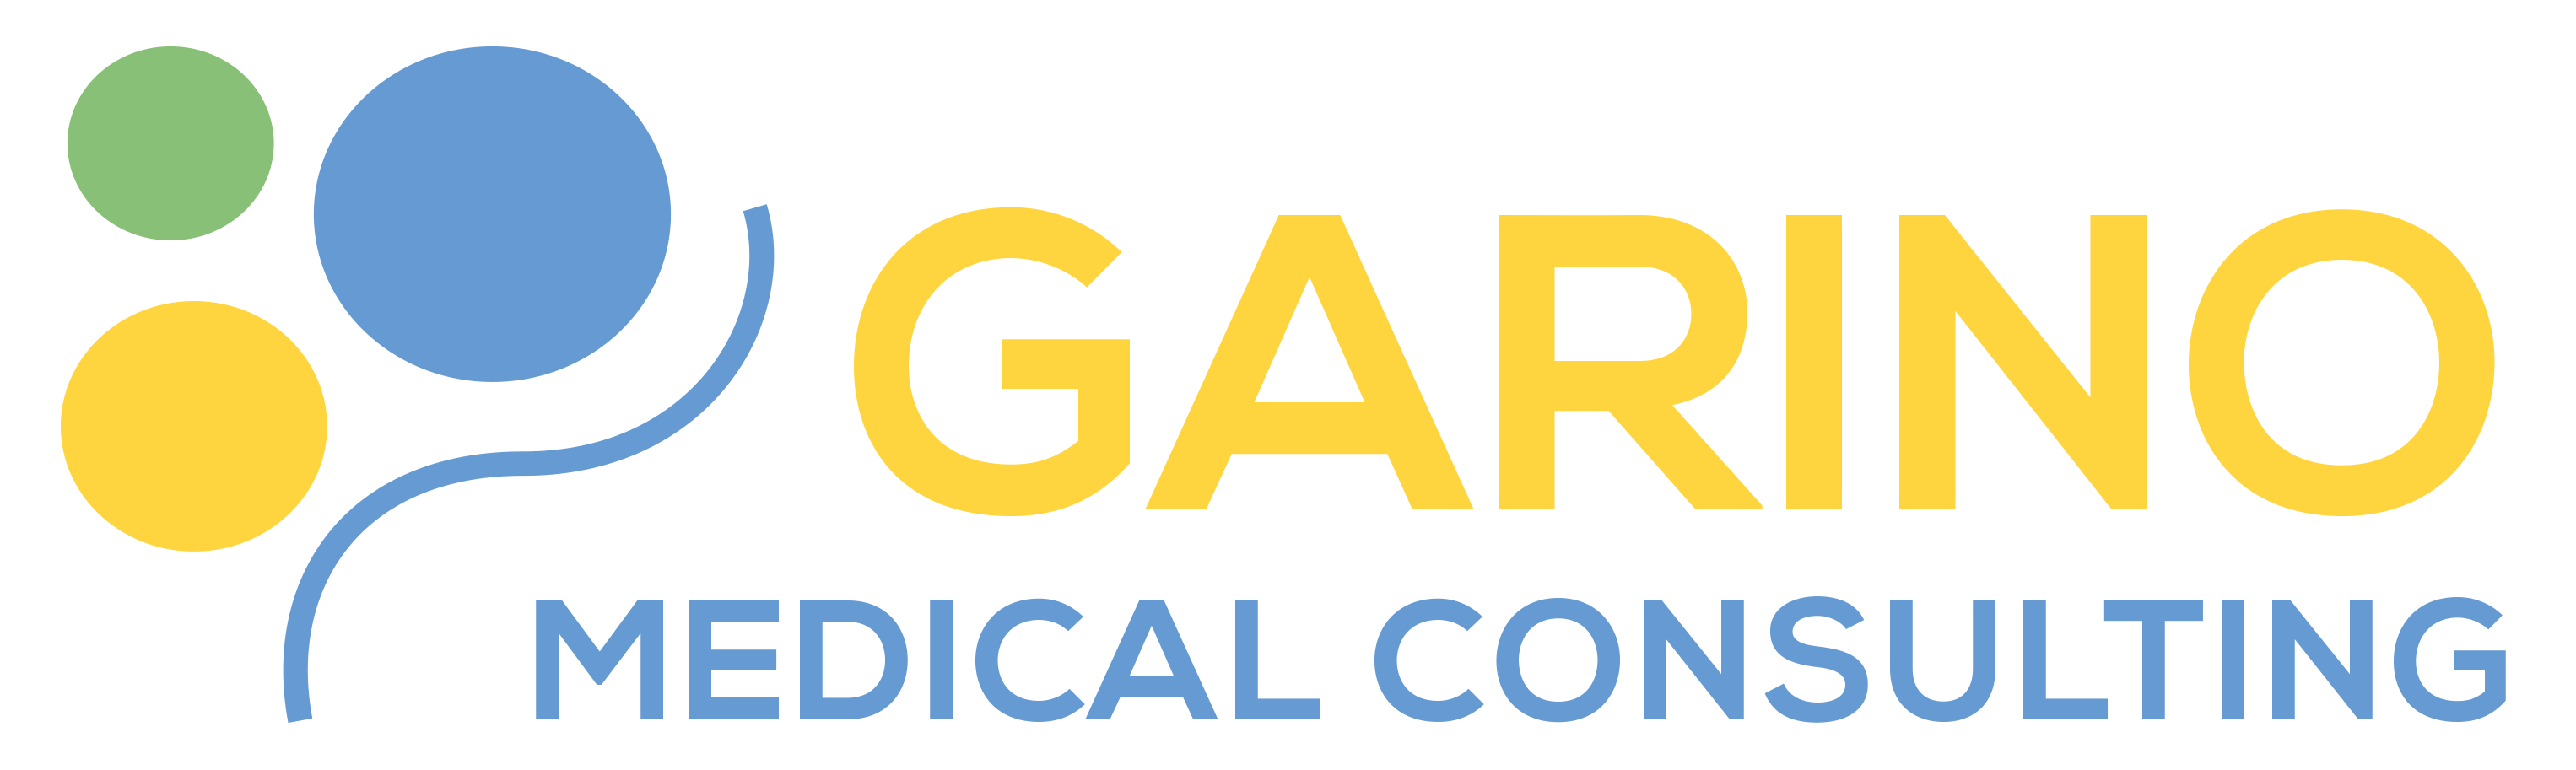 Garino Medical Consulting